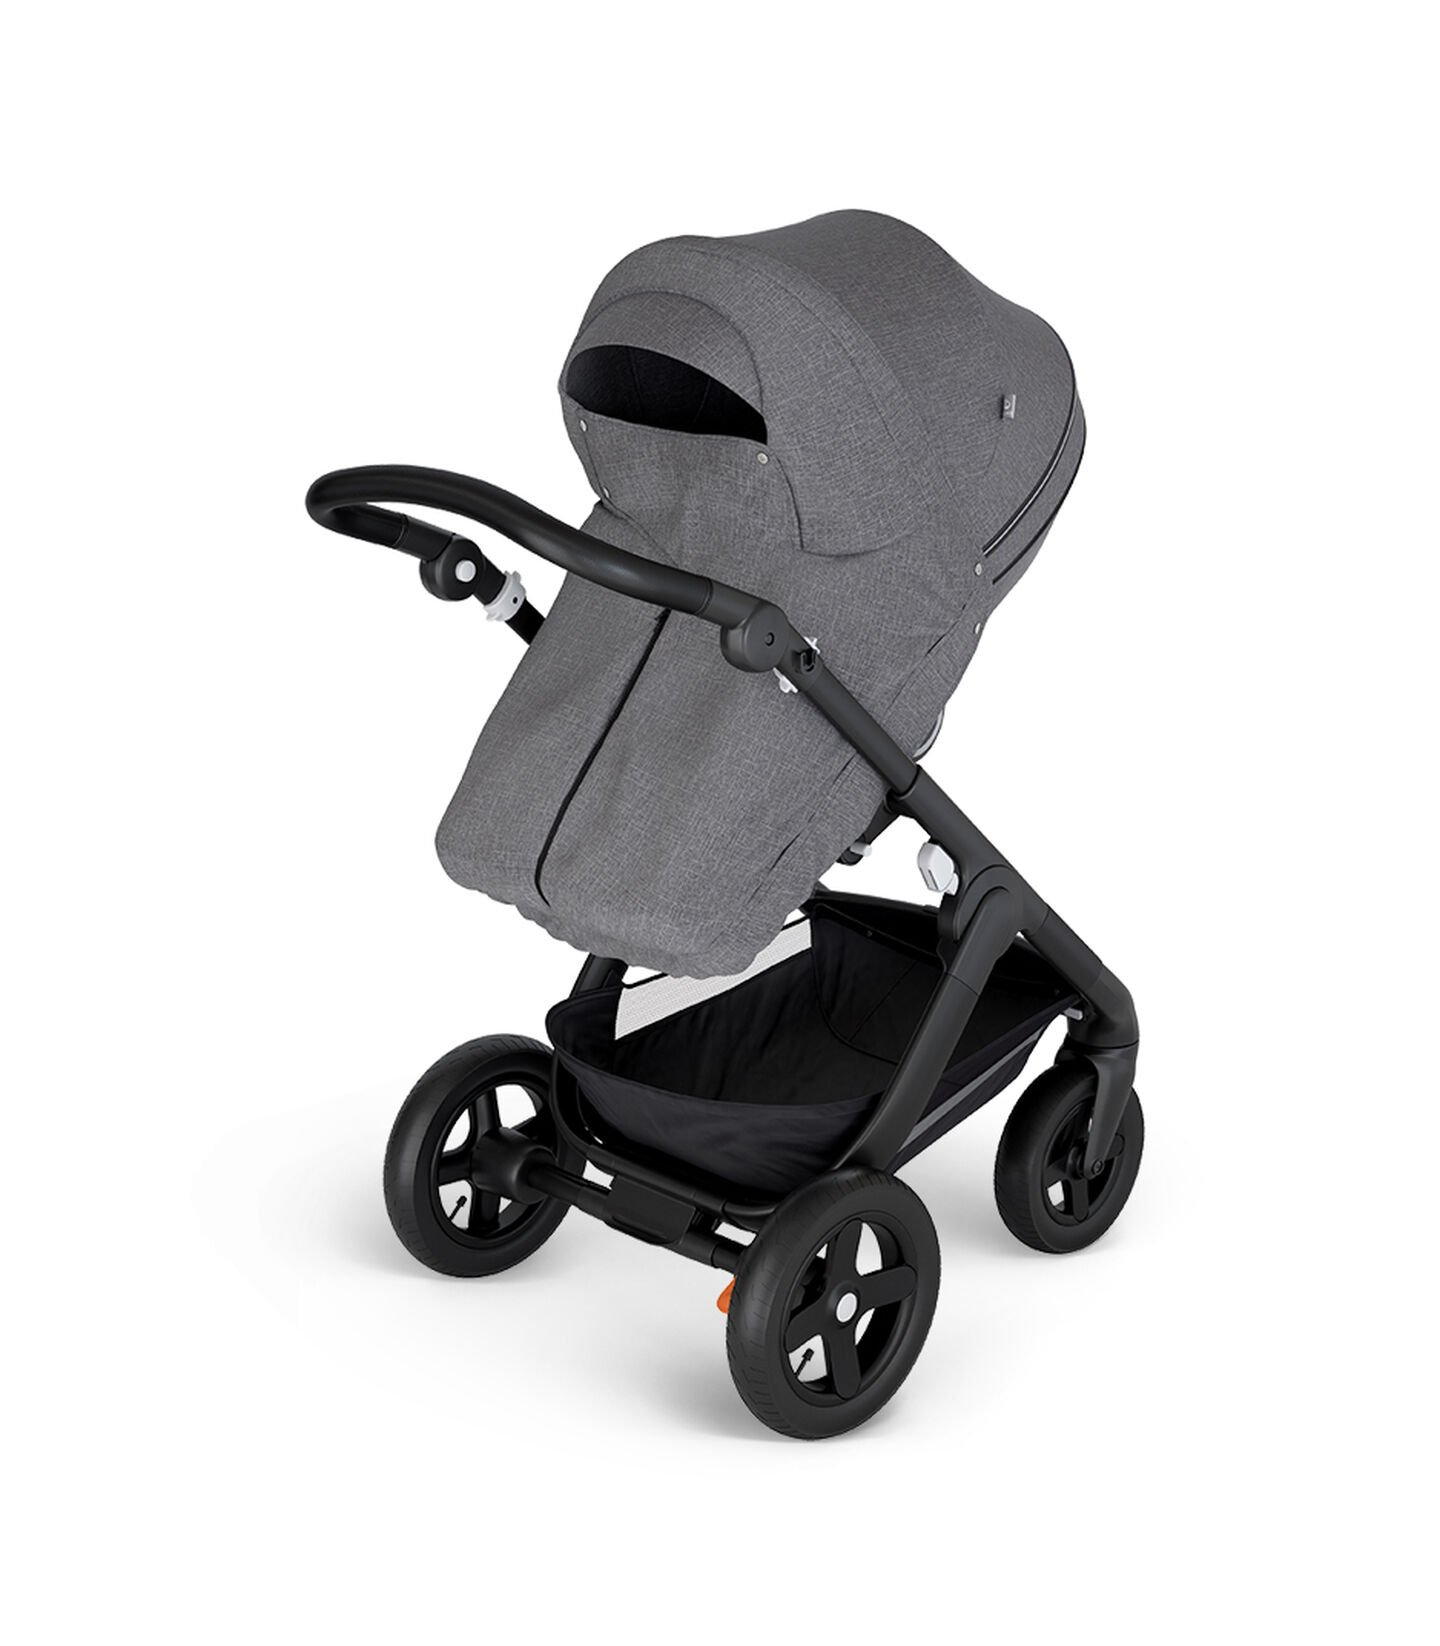 Stokke® Trailz™ with Black Chassis and Stokke® Stroller Seat Black Melange. Stokke® Stroller Storm Cover, Black Melange.